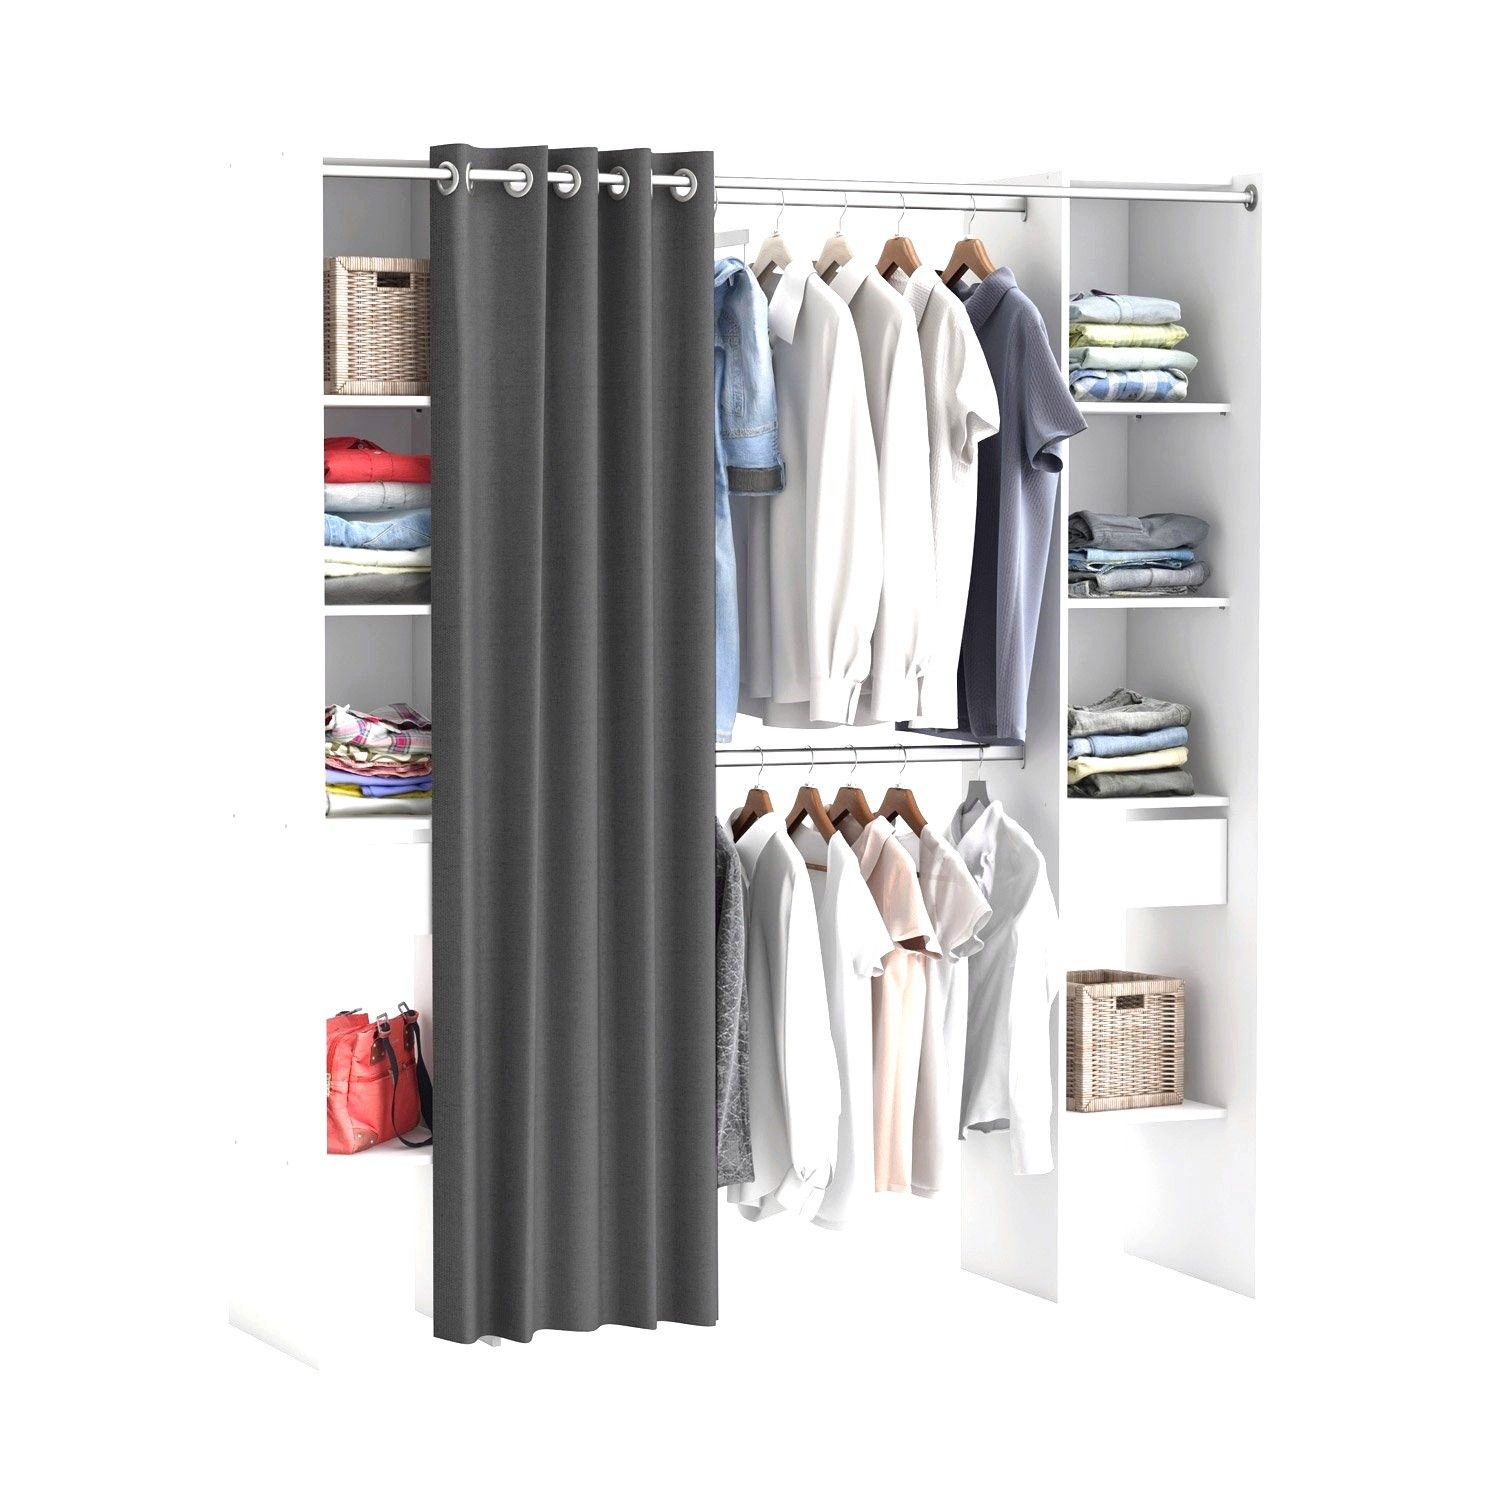 Dressing Spaceo Home Gris Dressing Leroy Merlin Home Dressing Walk In Closet